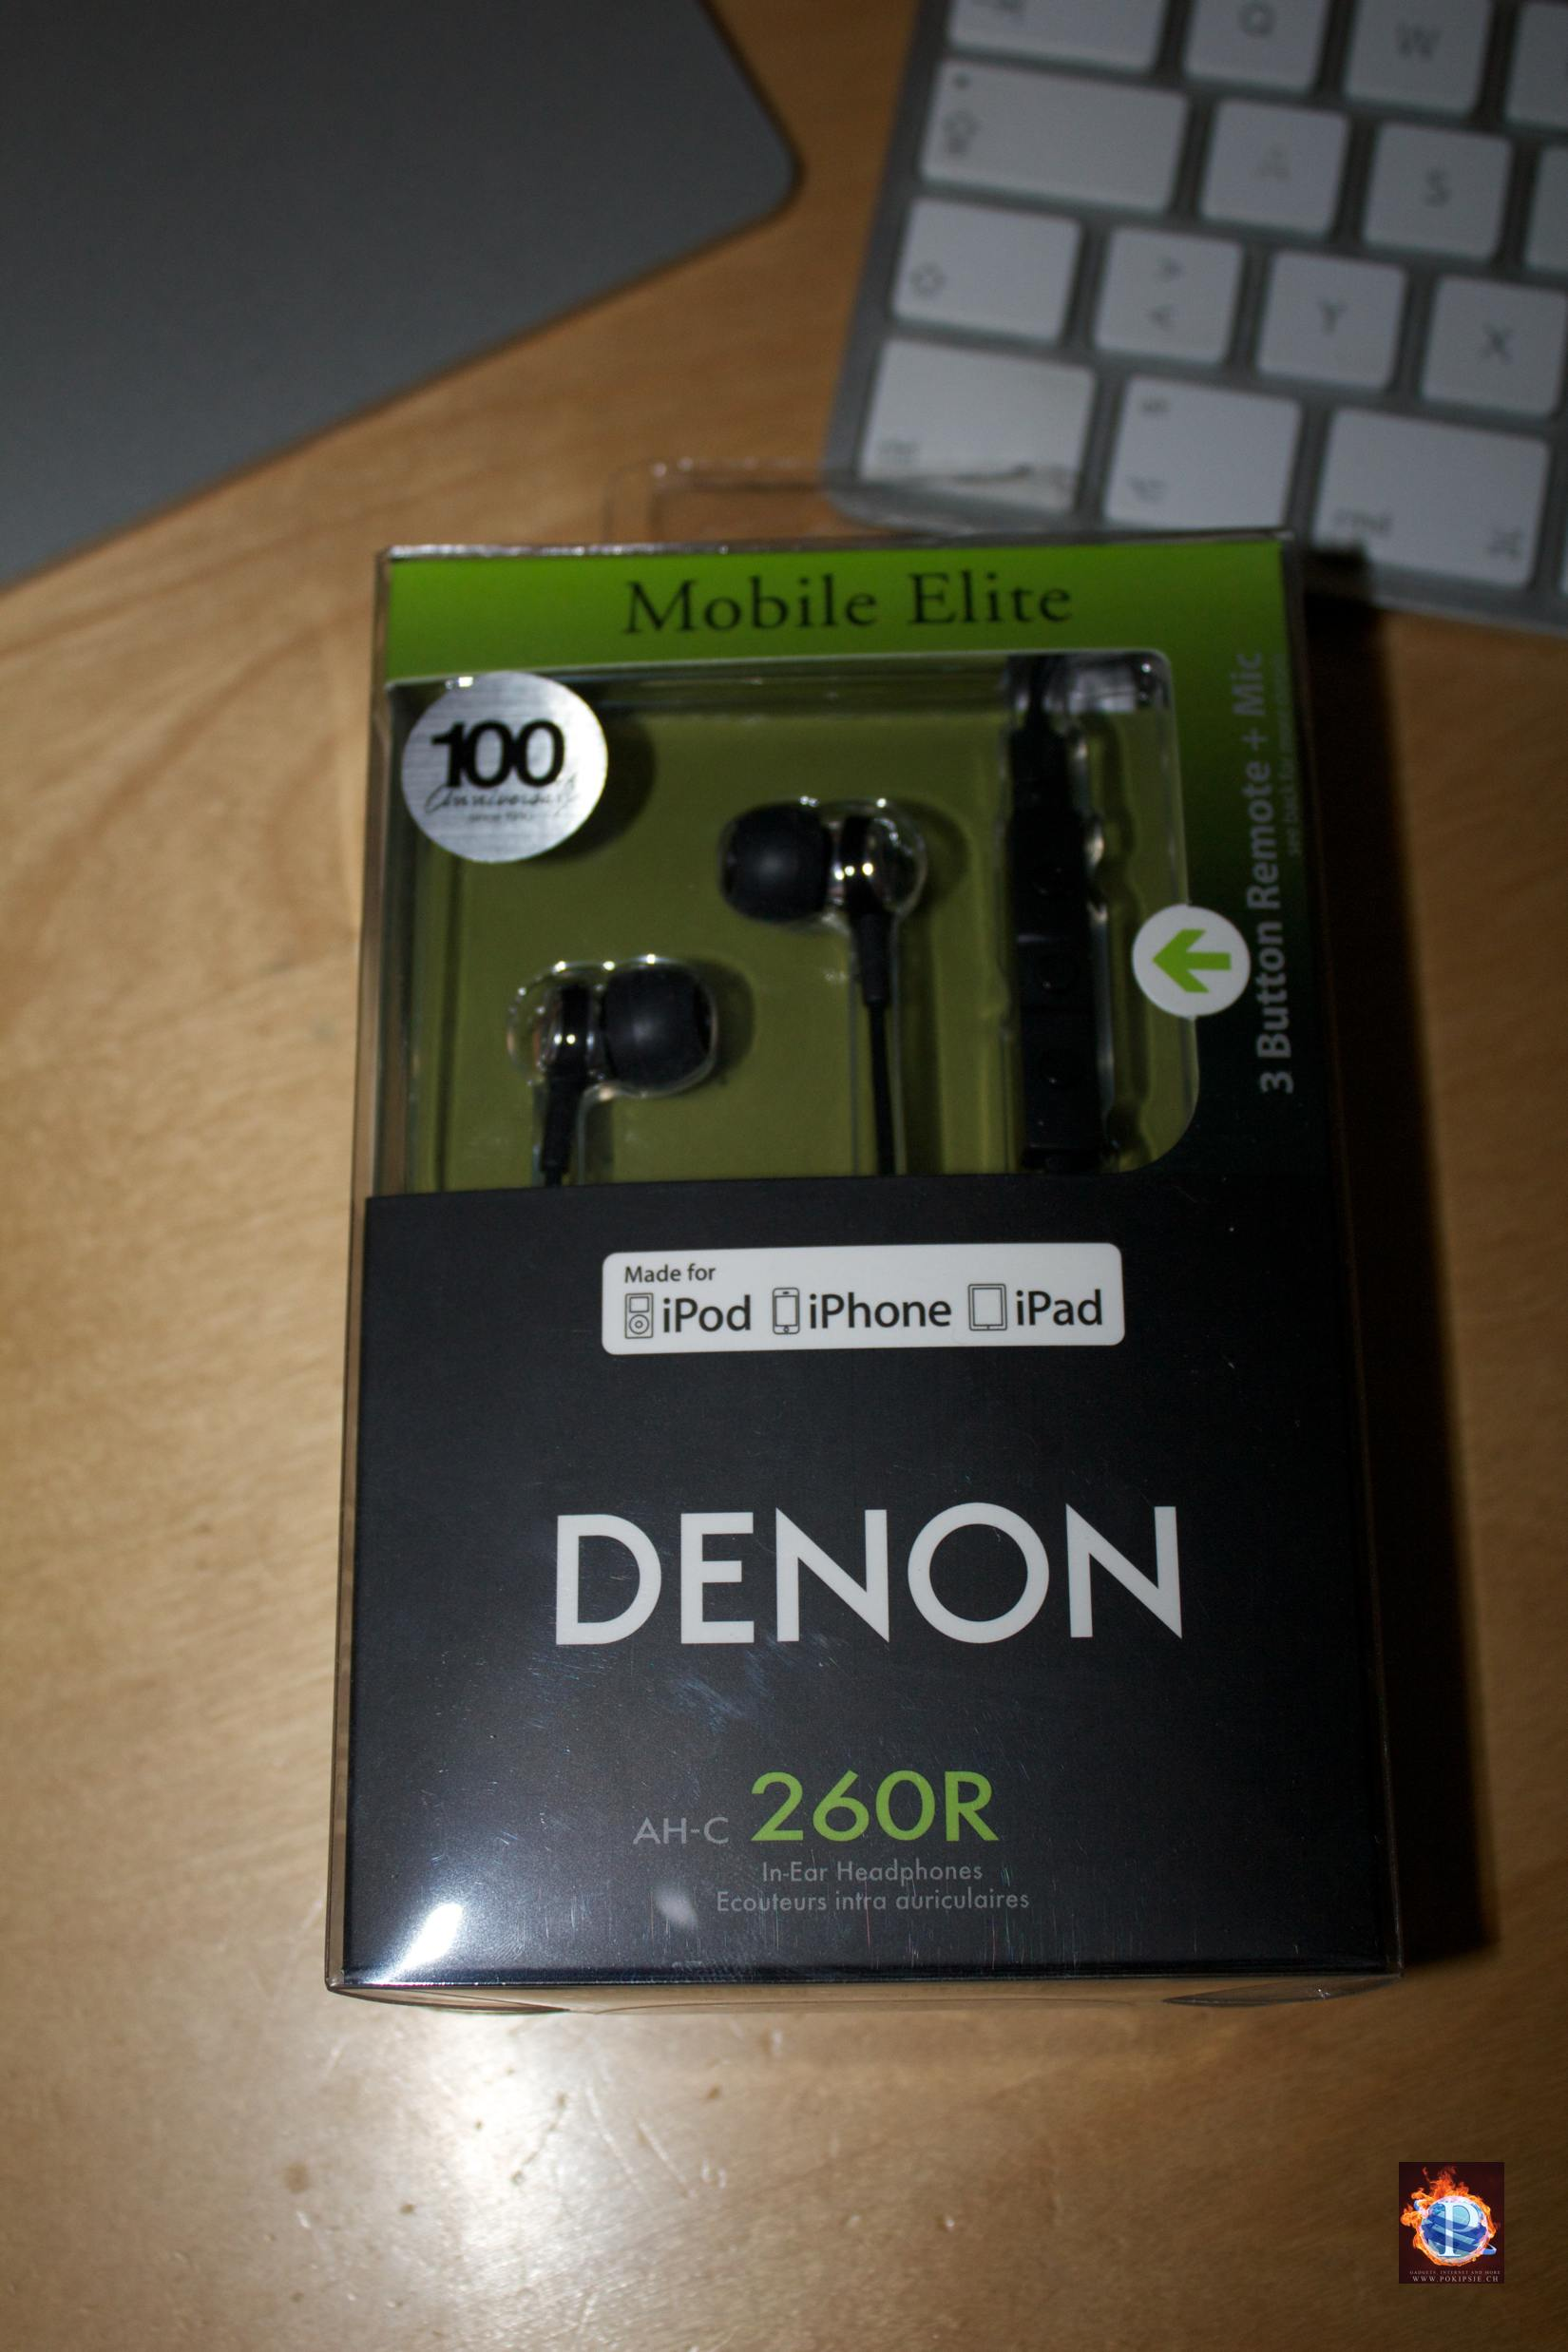 denon ah c260r in ear kopfh rer im test pokipsie network. Black Bedroom Furniture Sets. Home Design Ideas